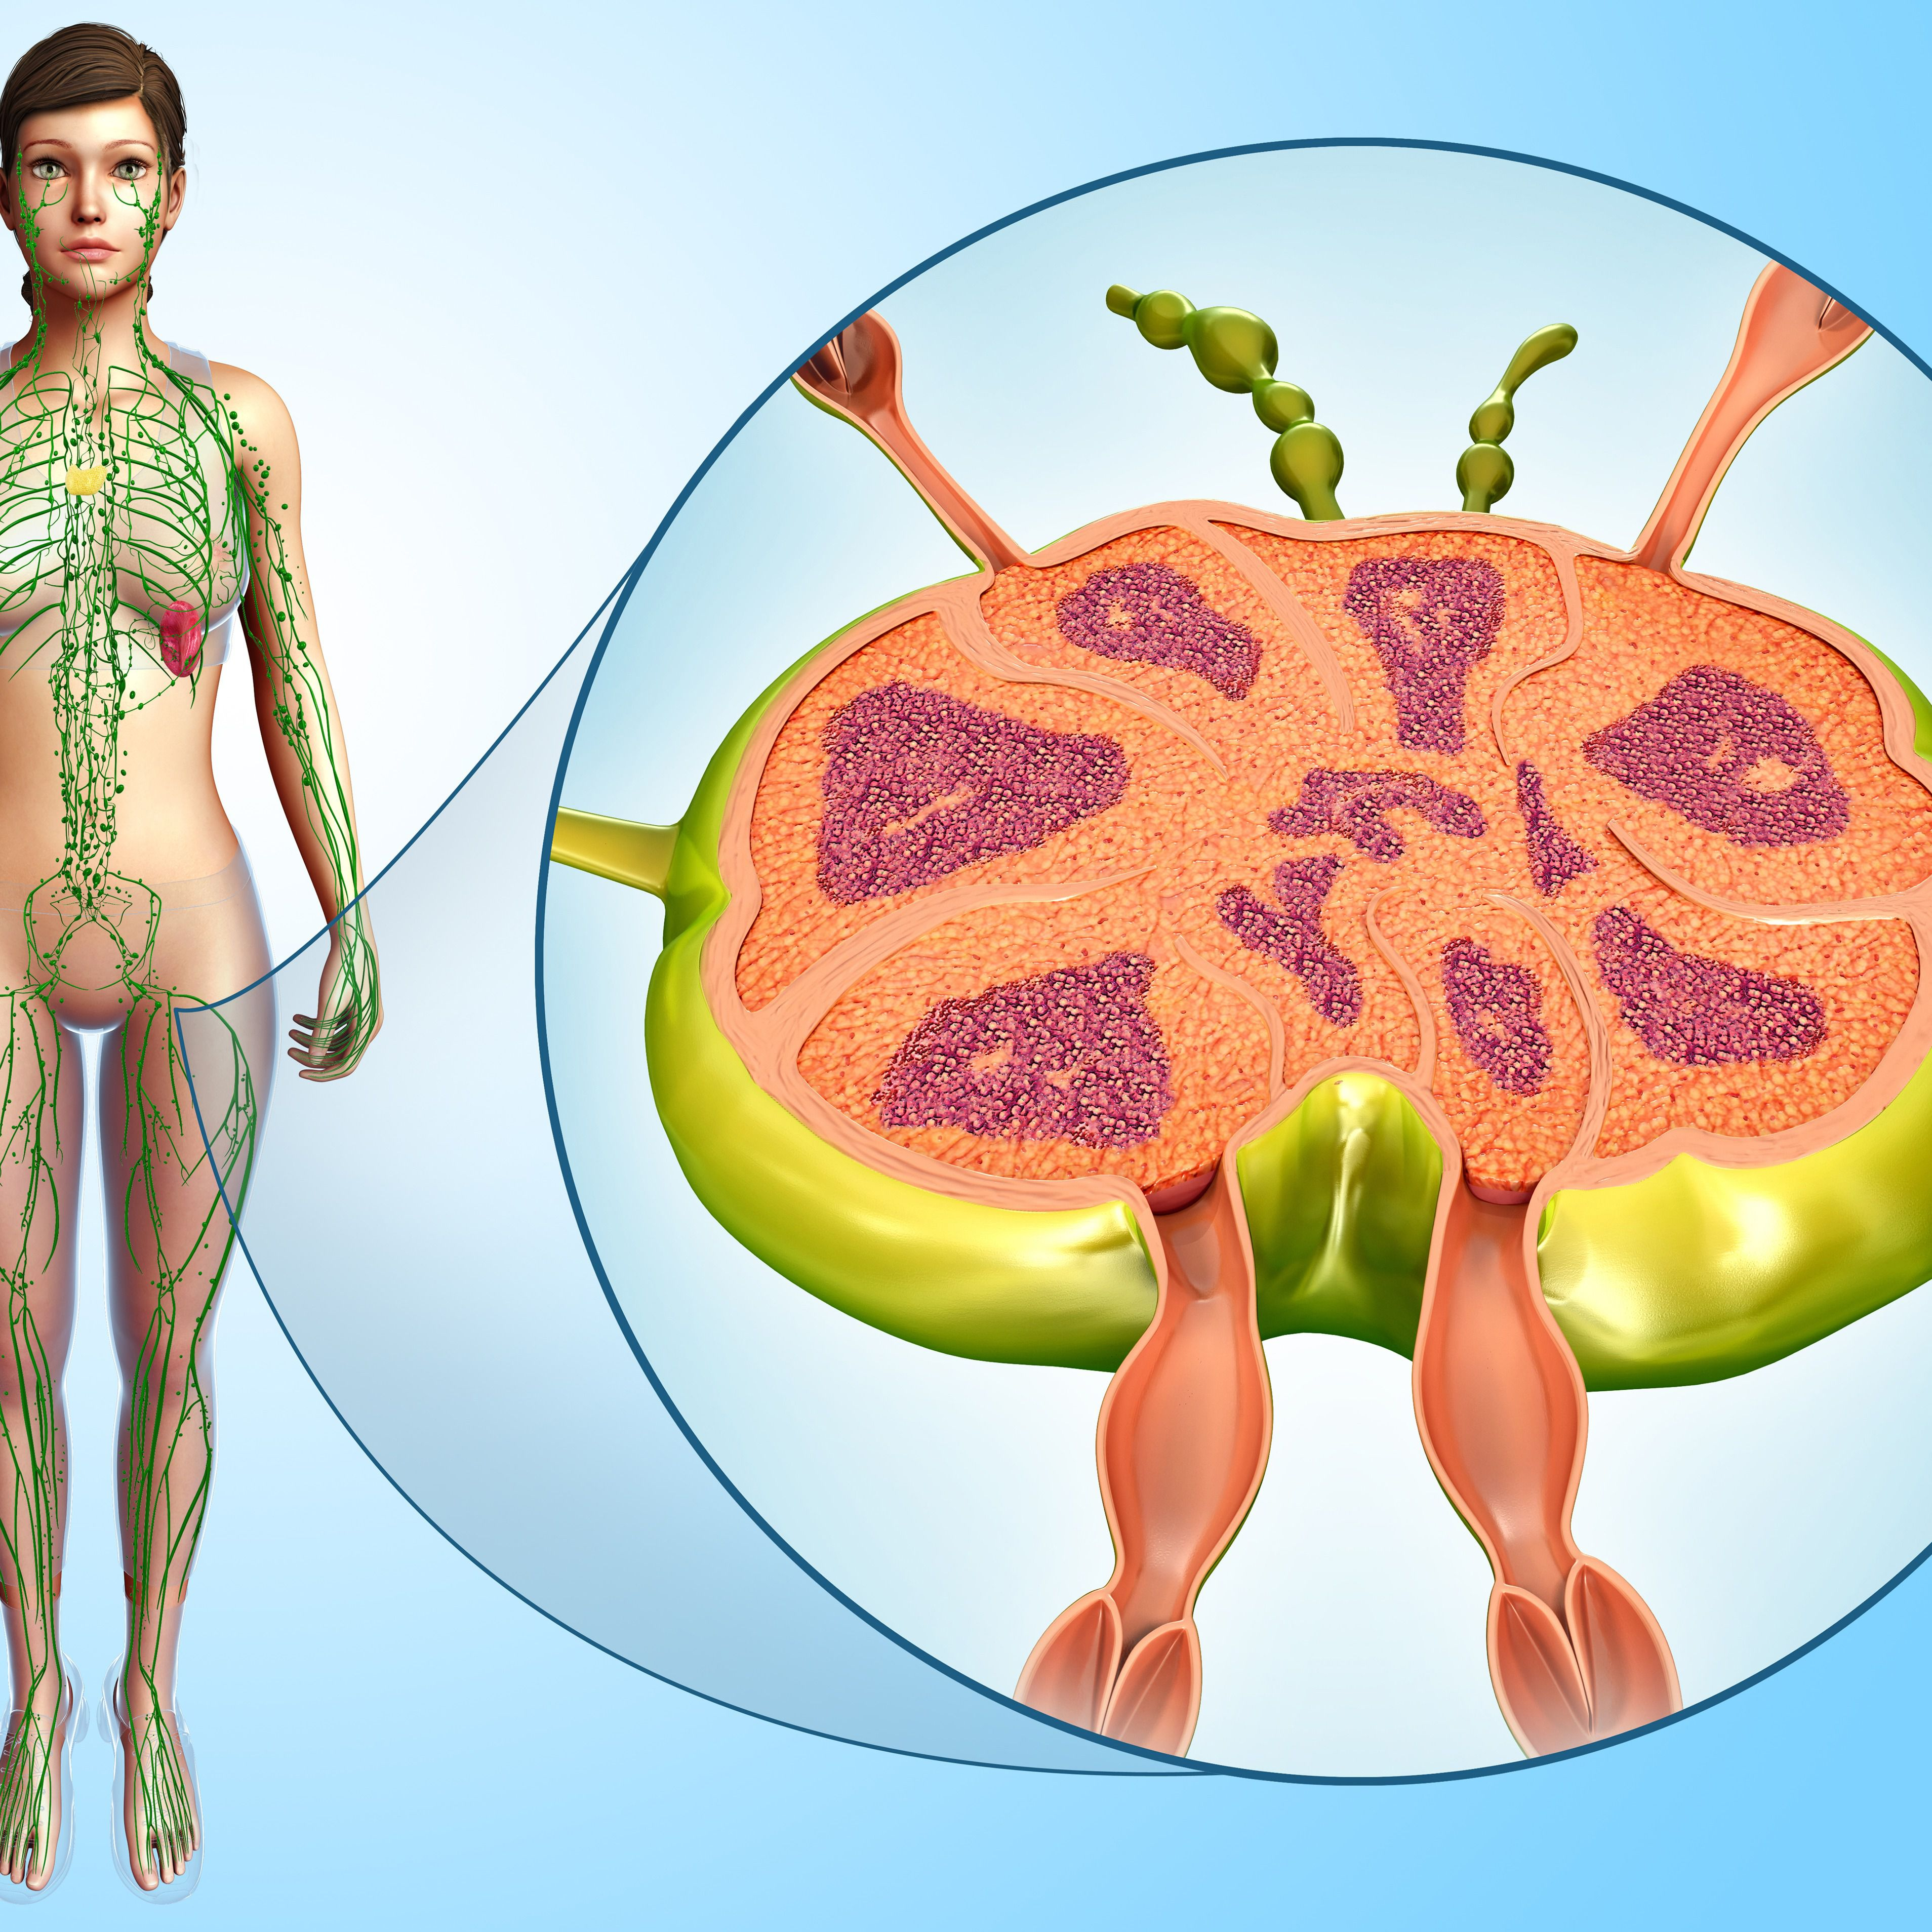 Do Enlarged Lymph Nodes Offer Clues About Cancer